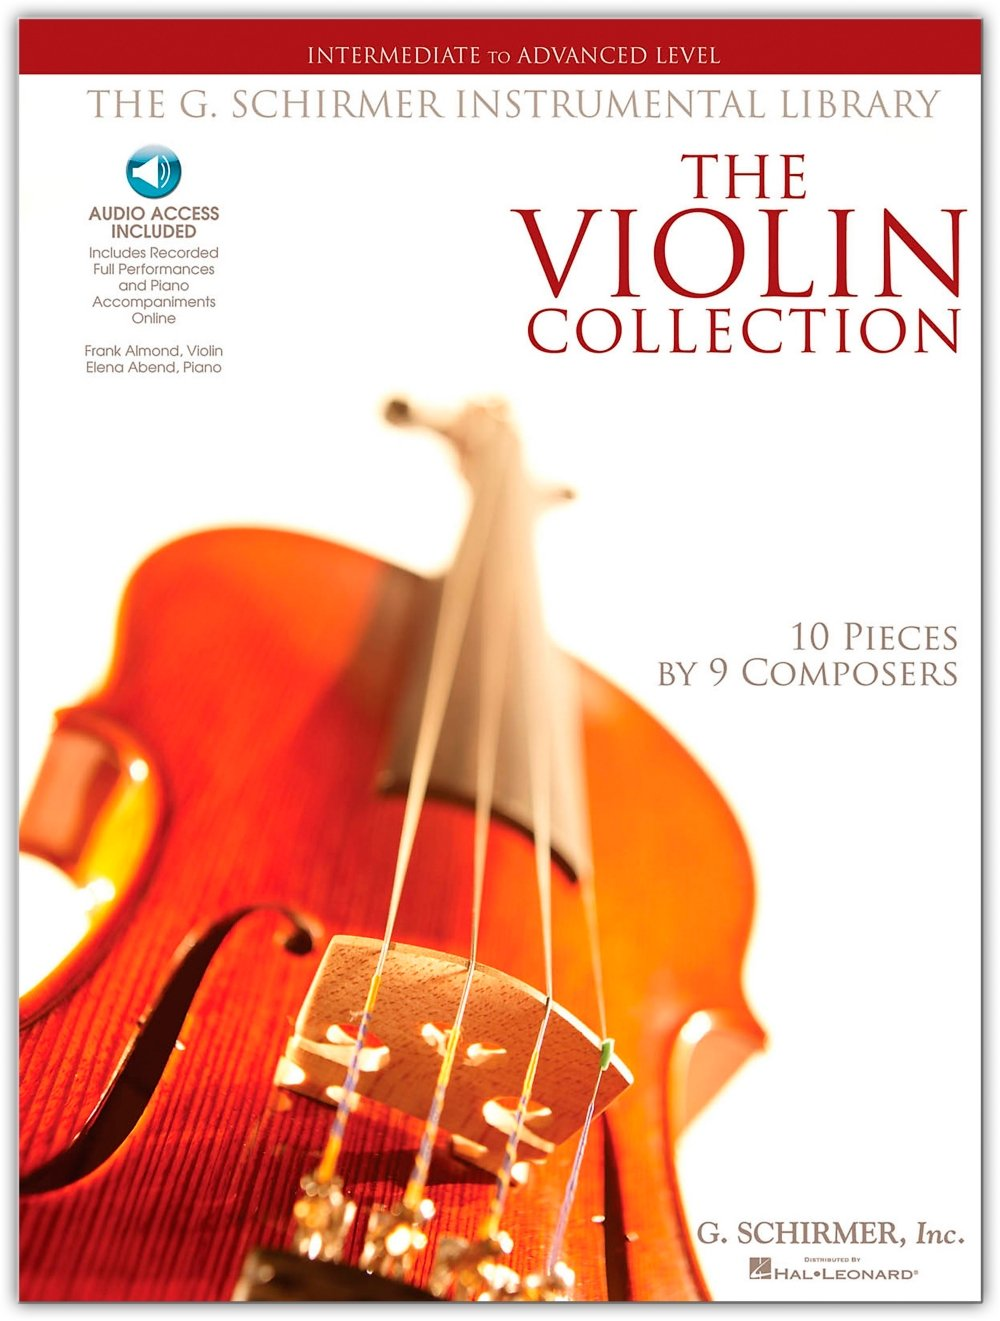 Amazon.com: G. Schirmer The Violin Collection - Intermediate To Advanced  Violin / Piano G. Schirmer Instr Library (0884088009809): G. Schirmer: Books